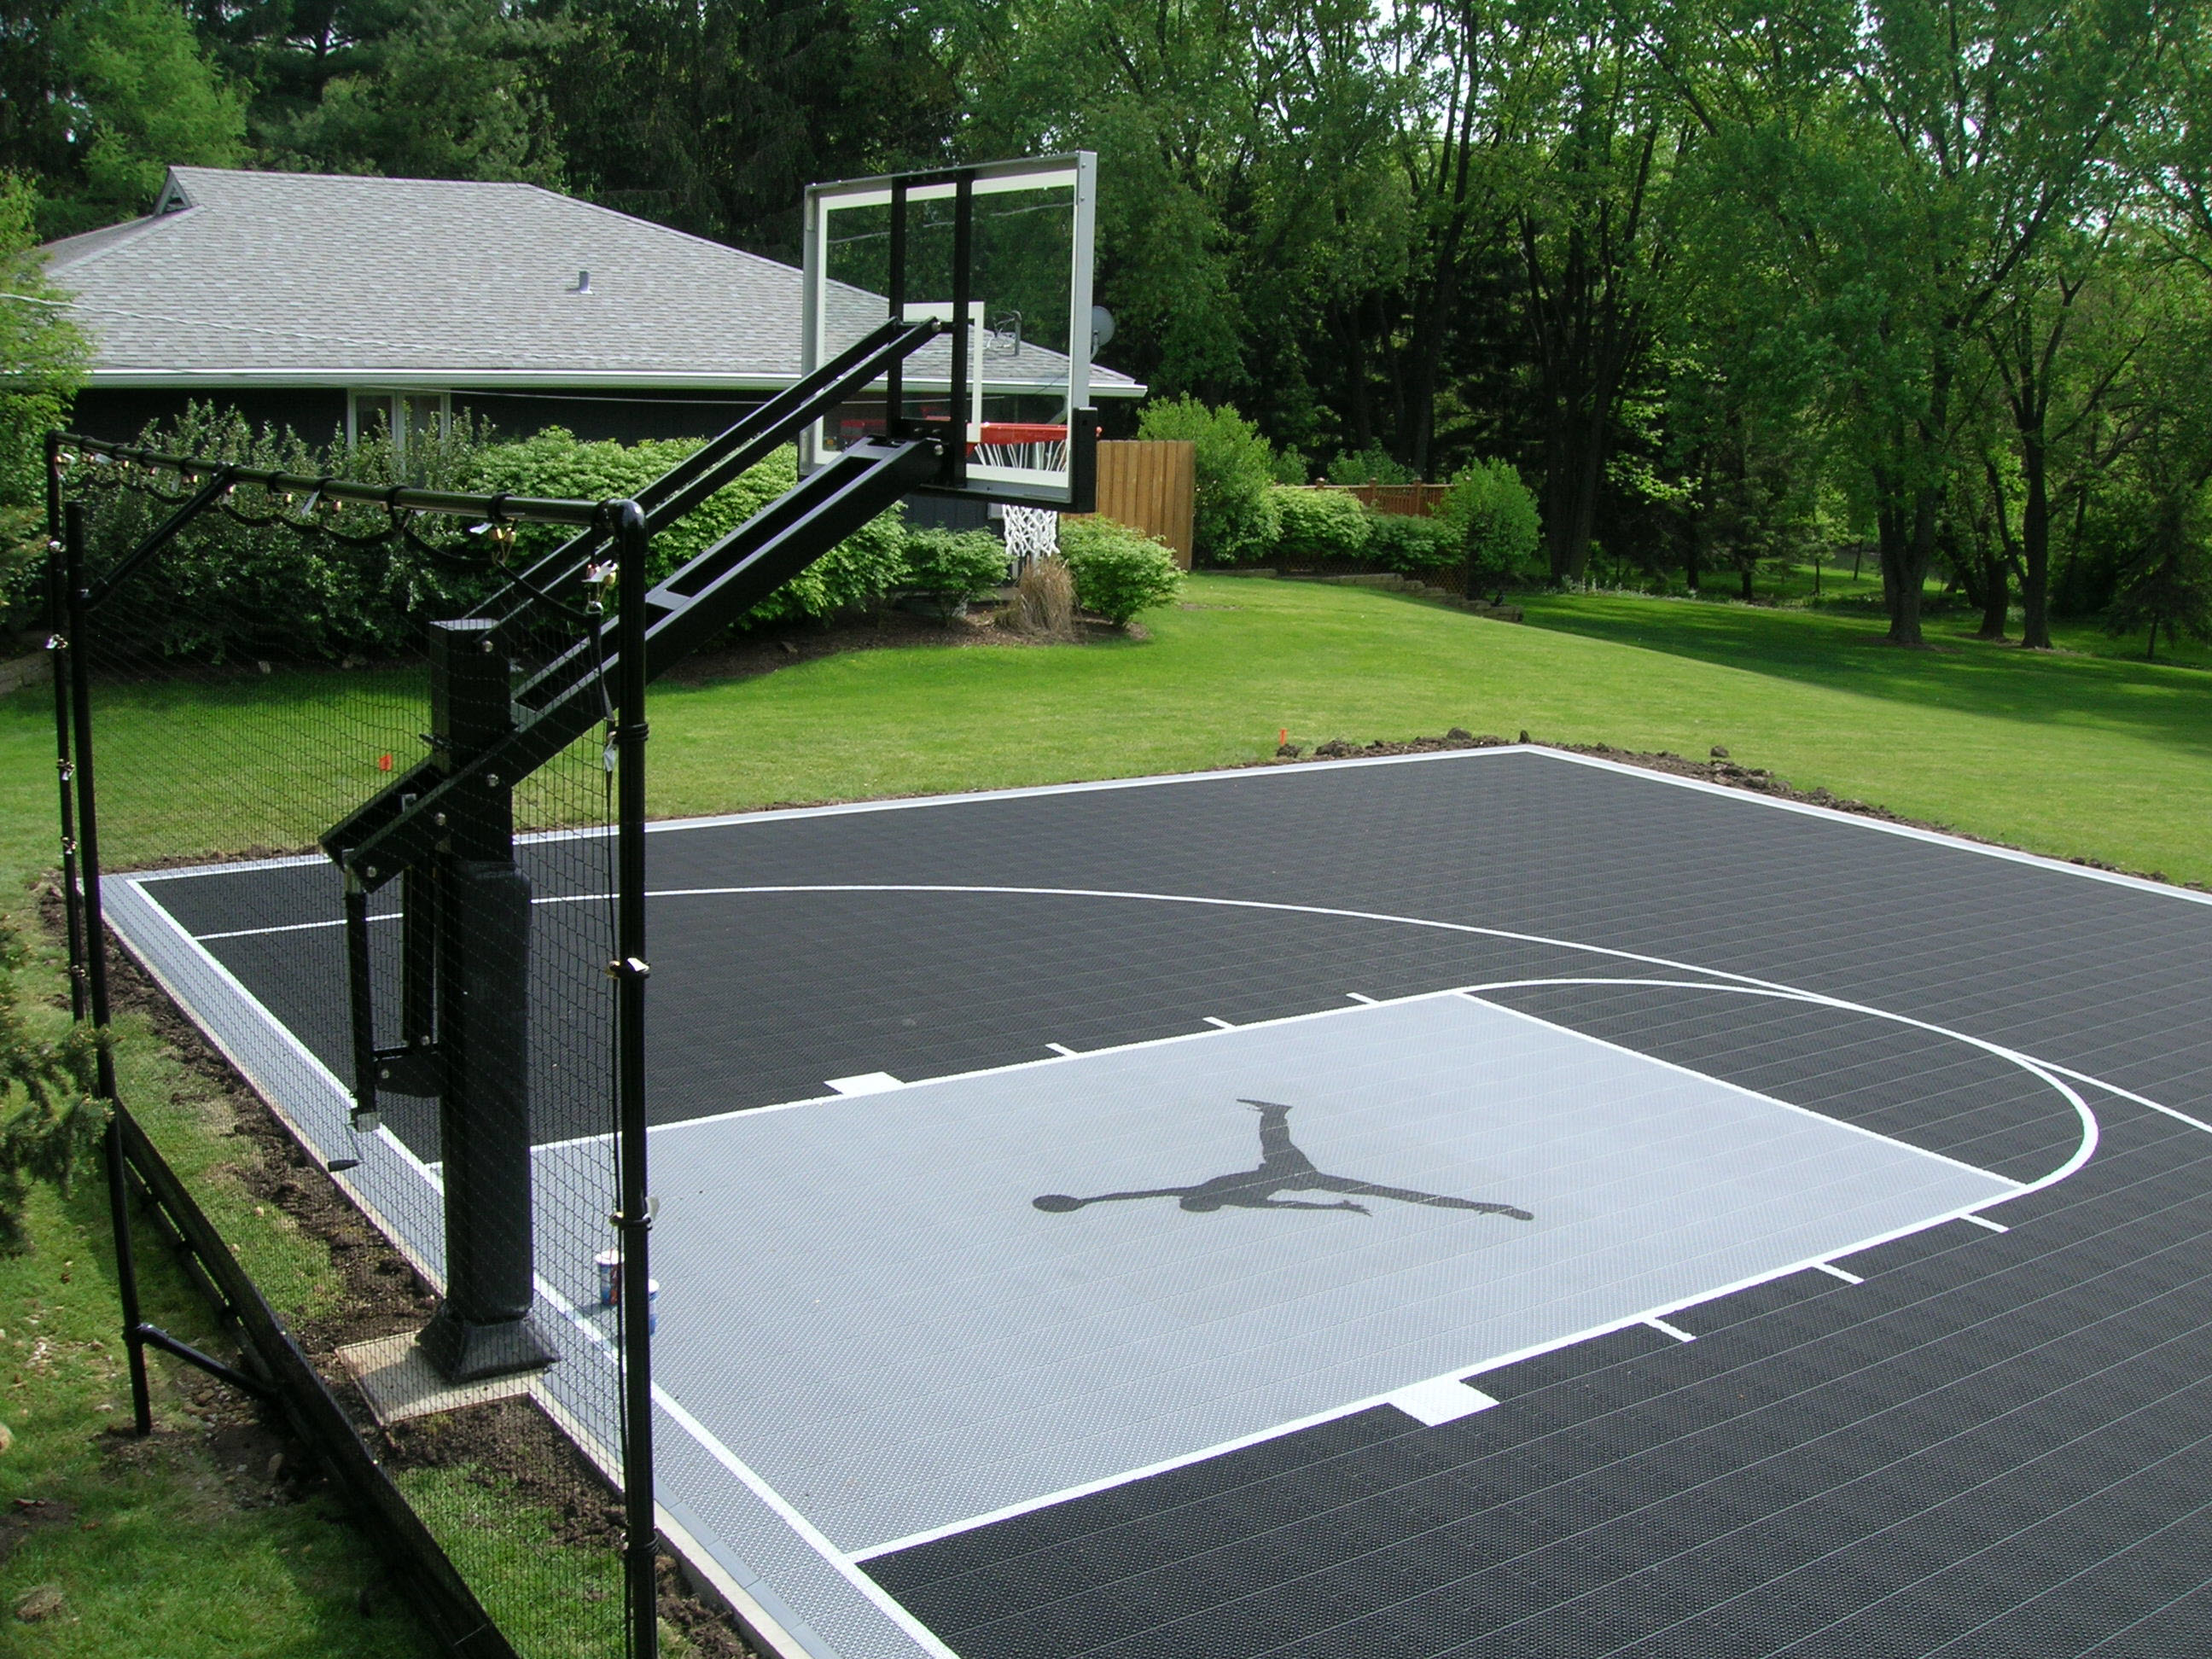 Basketporn top 13 backyard basketball courts basketporn for Home basketball court cost